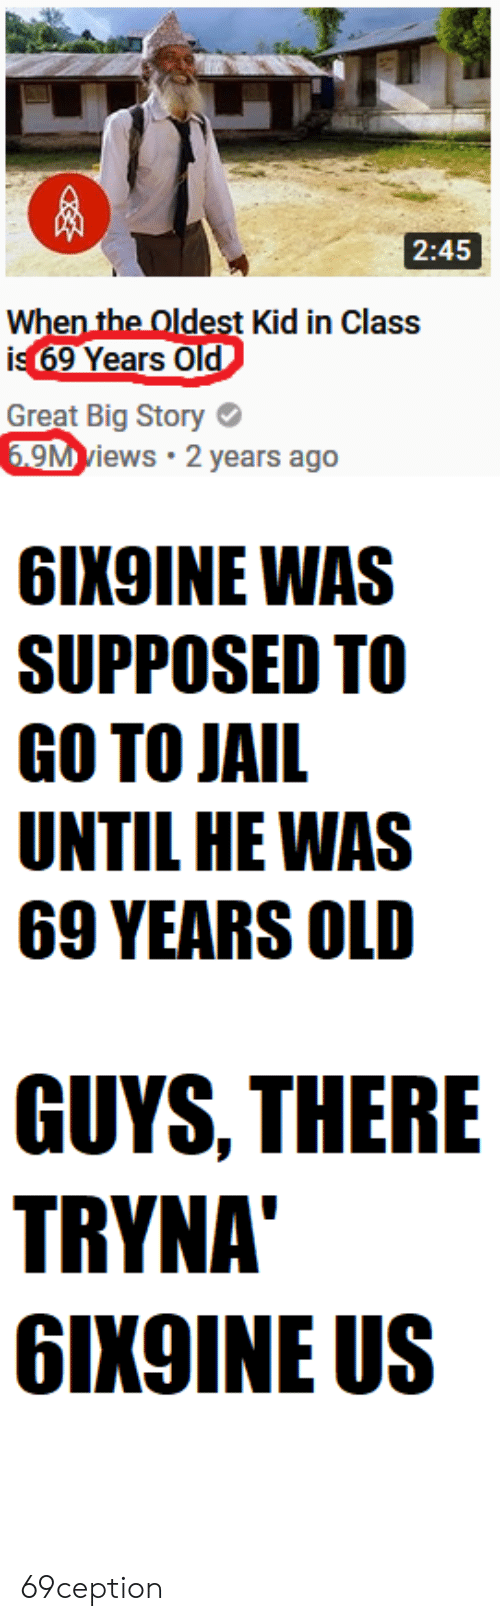 Jail, Old, and Class: 2:45  dest Kid in Class  is 69 Years O  Great Big Story  M views 2 years ago  6IX9INE WAS  SUPPOSED TO  GO TO JAIL  UNTIL HE WAS  69 YEARS OLD  GUYS, THERE  TRYNA  GIX9INE US 69ception